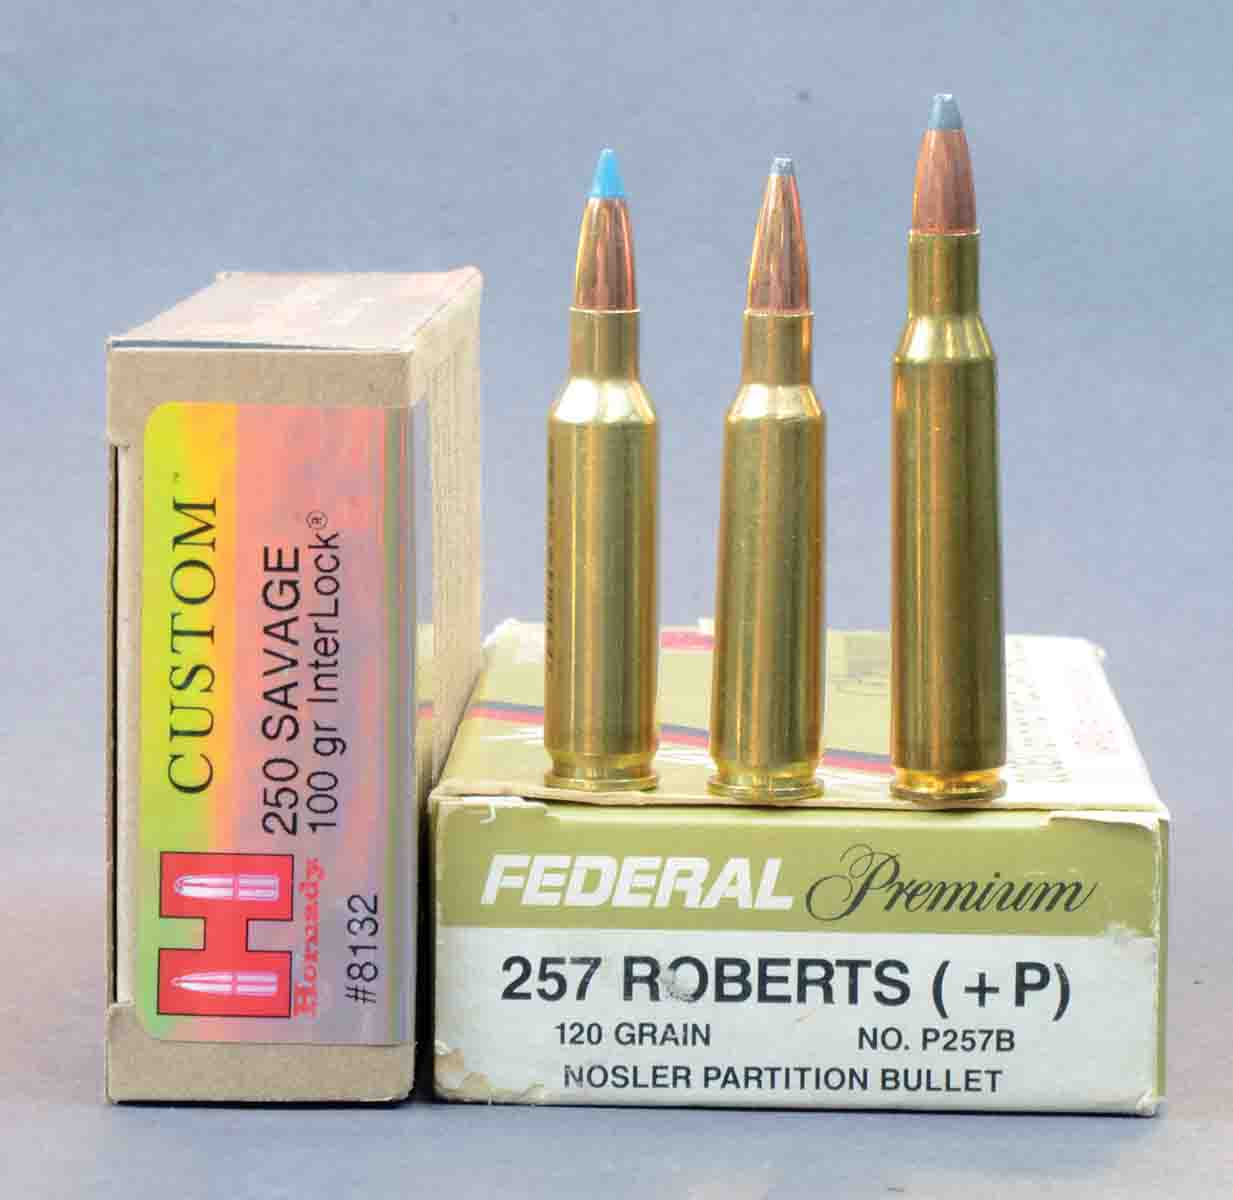 When 100-grain bullets are loaded to maximum pressure and fired in 24-inch barrels, the .250 Savage Improved is about 100 fps faster than the standard .250 Savage, and about 300 fps faster than Hornady's factory load. It should not be expected to equal the velocity of the larger .257 Roberts when it is handloaded to maximum pressure. Cartridges include (left to right): a .250 Savage Improved, .250 Savage and a .257 Roberts.